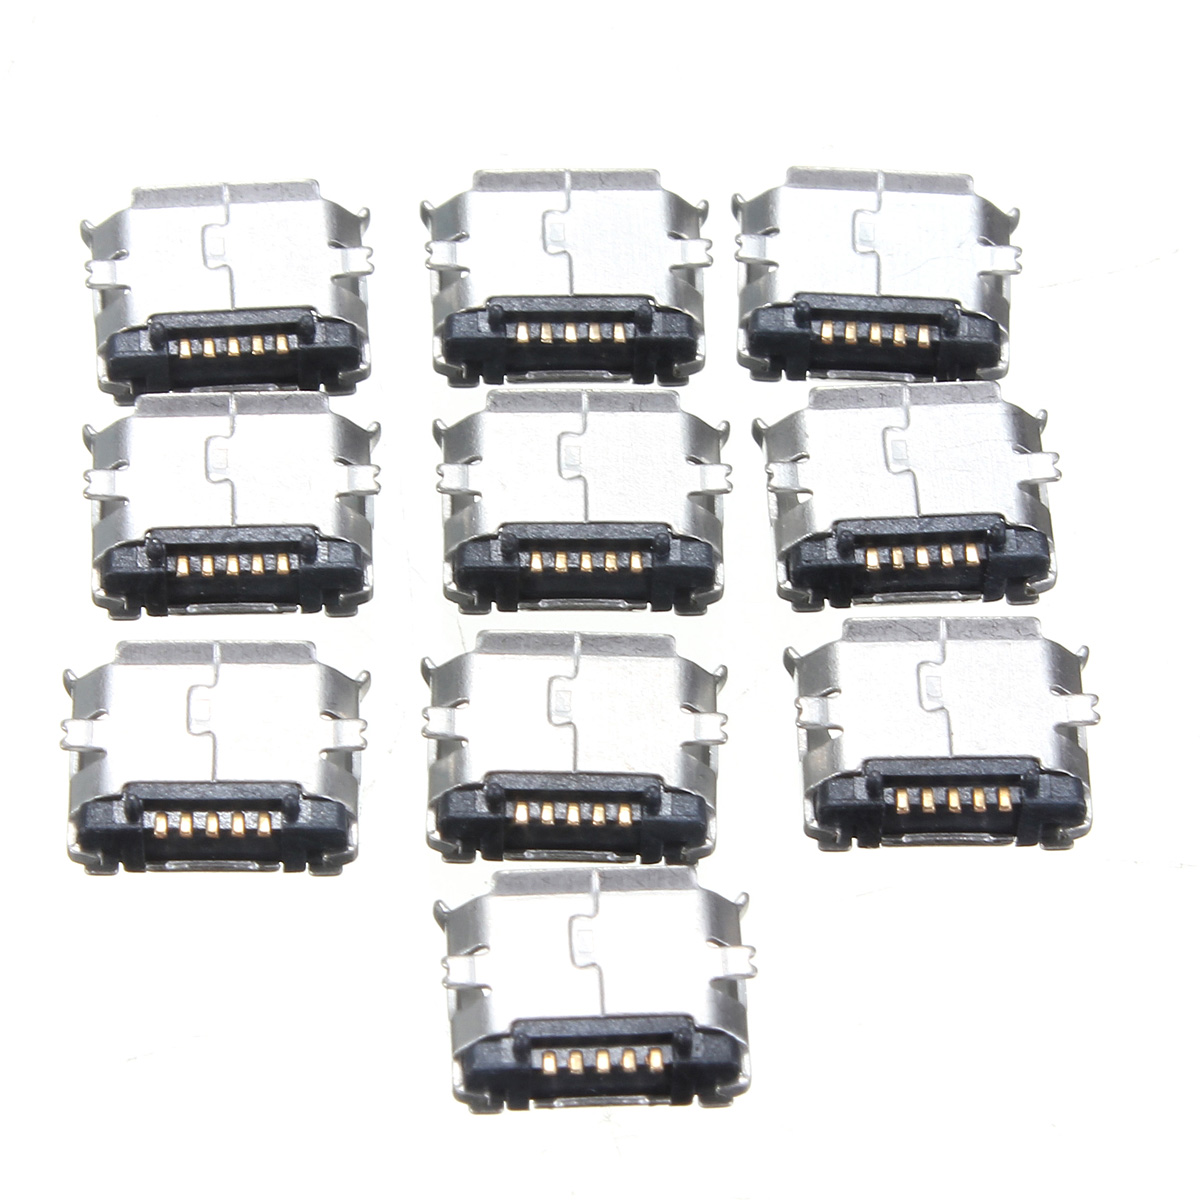 New 10pcs Usb Type B 90 Degrees Dip Female Socket Pcb